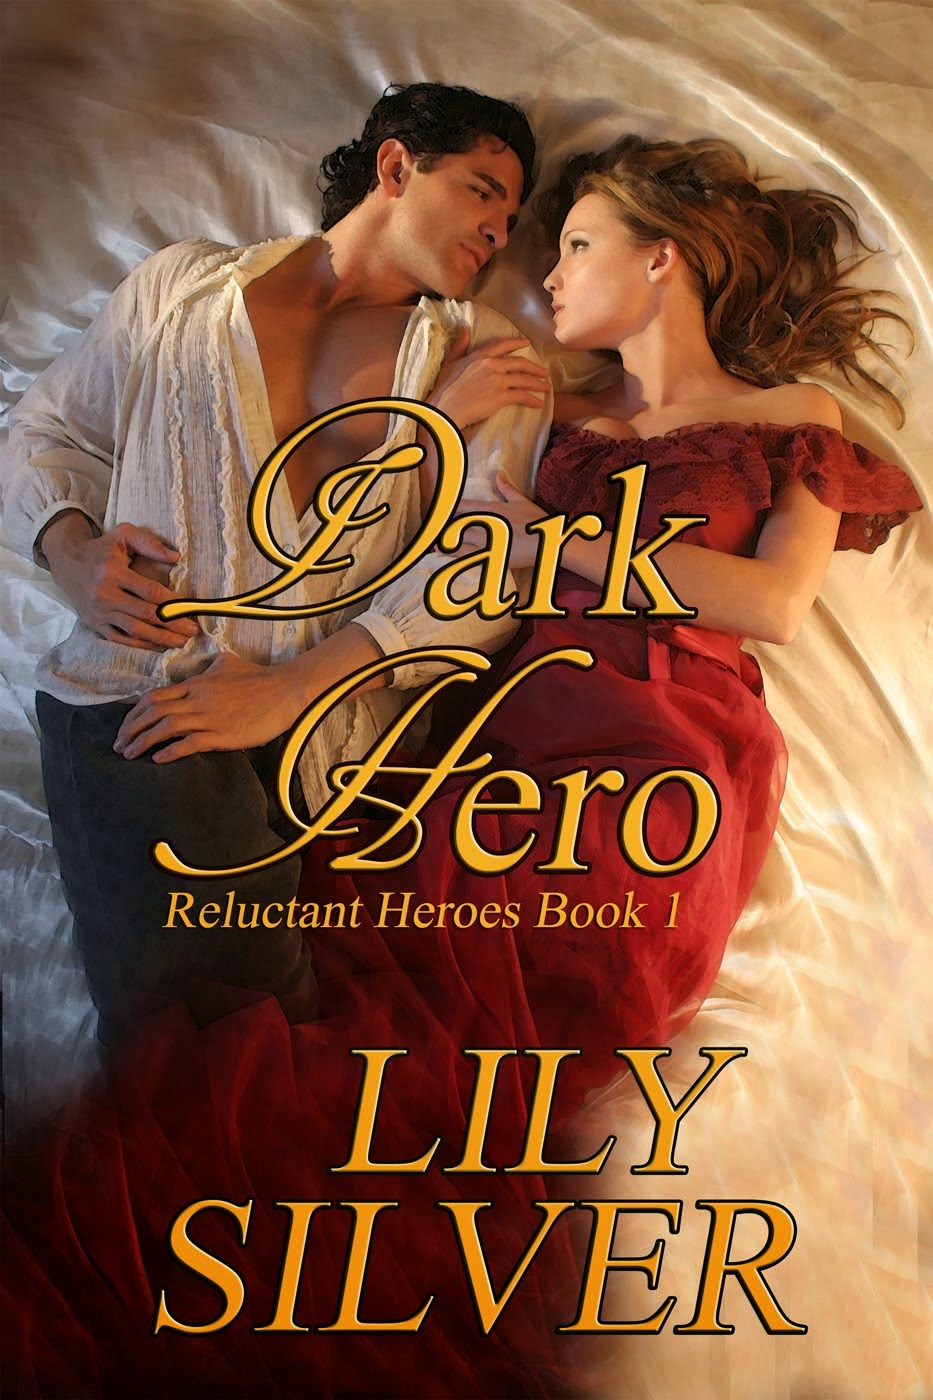 Reluctant Heroes Book 1